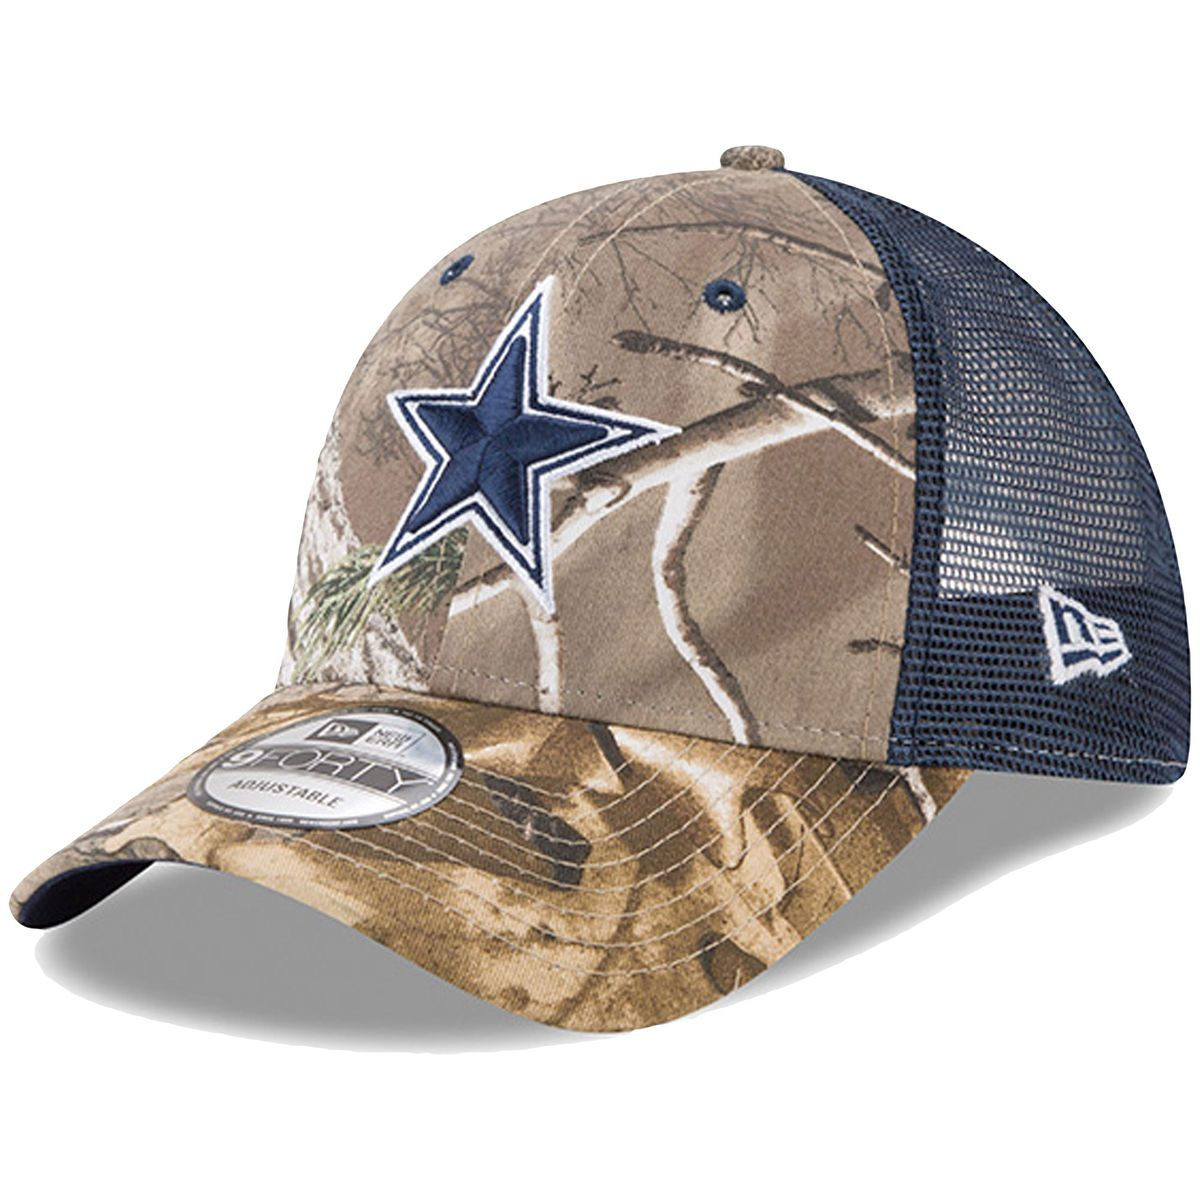 Shop Men s Dallas Cowboys New Era Realtree Camo Navy Trucker 9FORTY  Adjustable Snapback Hat from your favorite team at the official online  retailer of the ... 224251c06